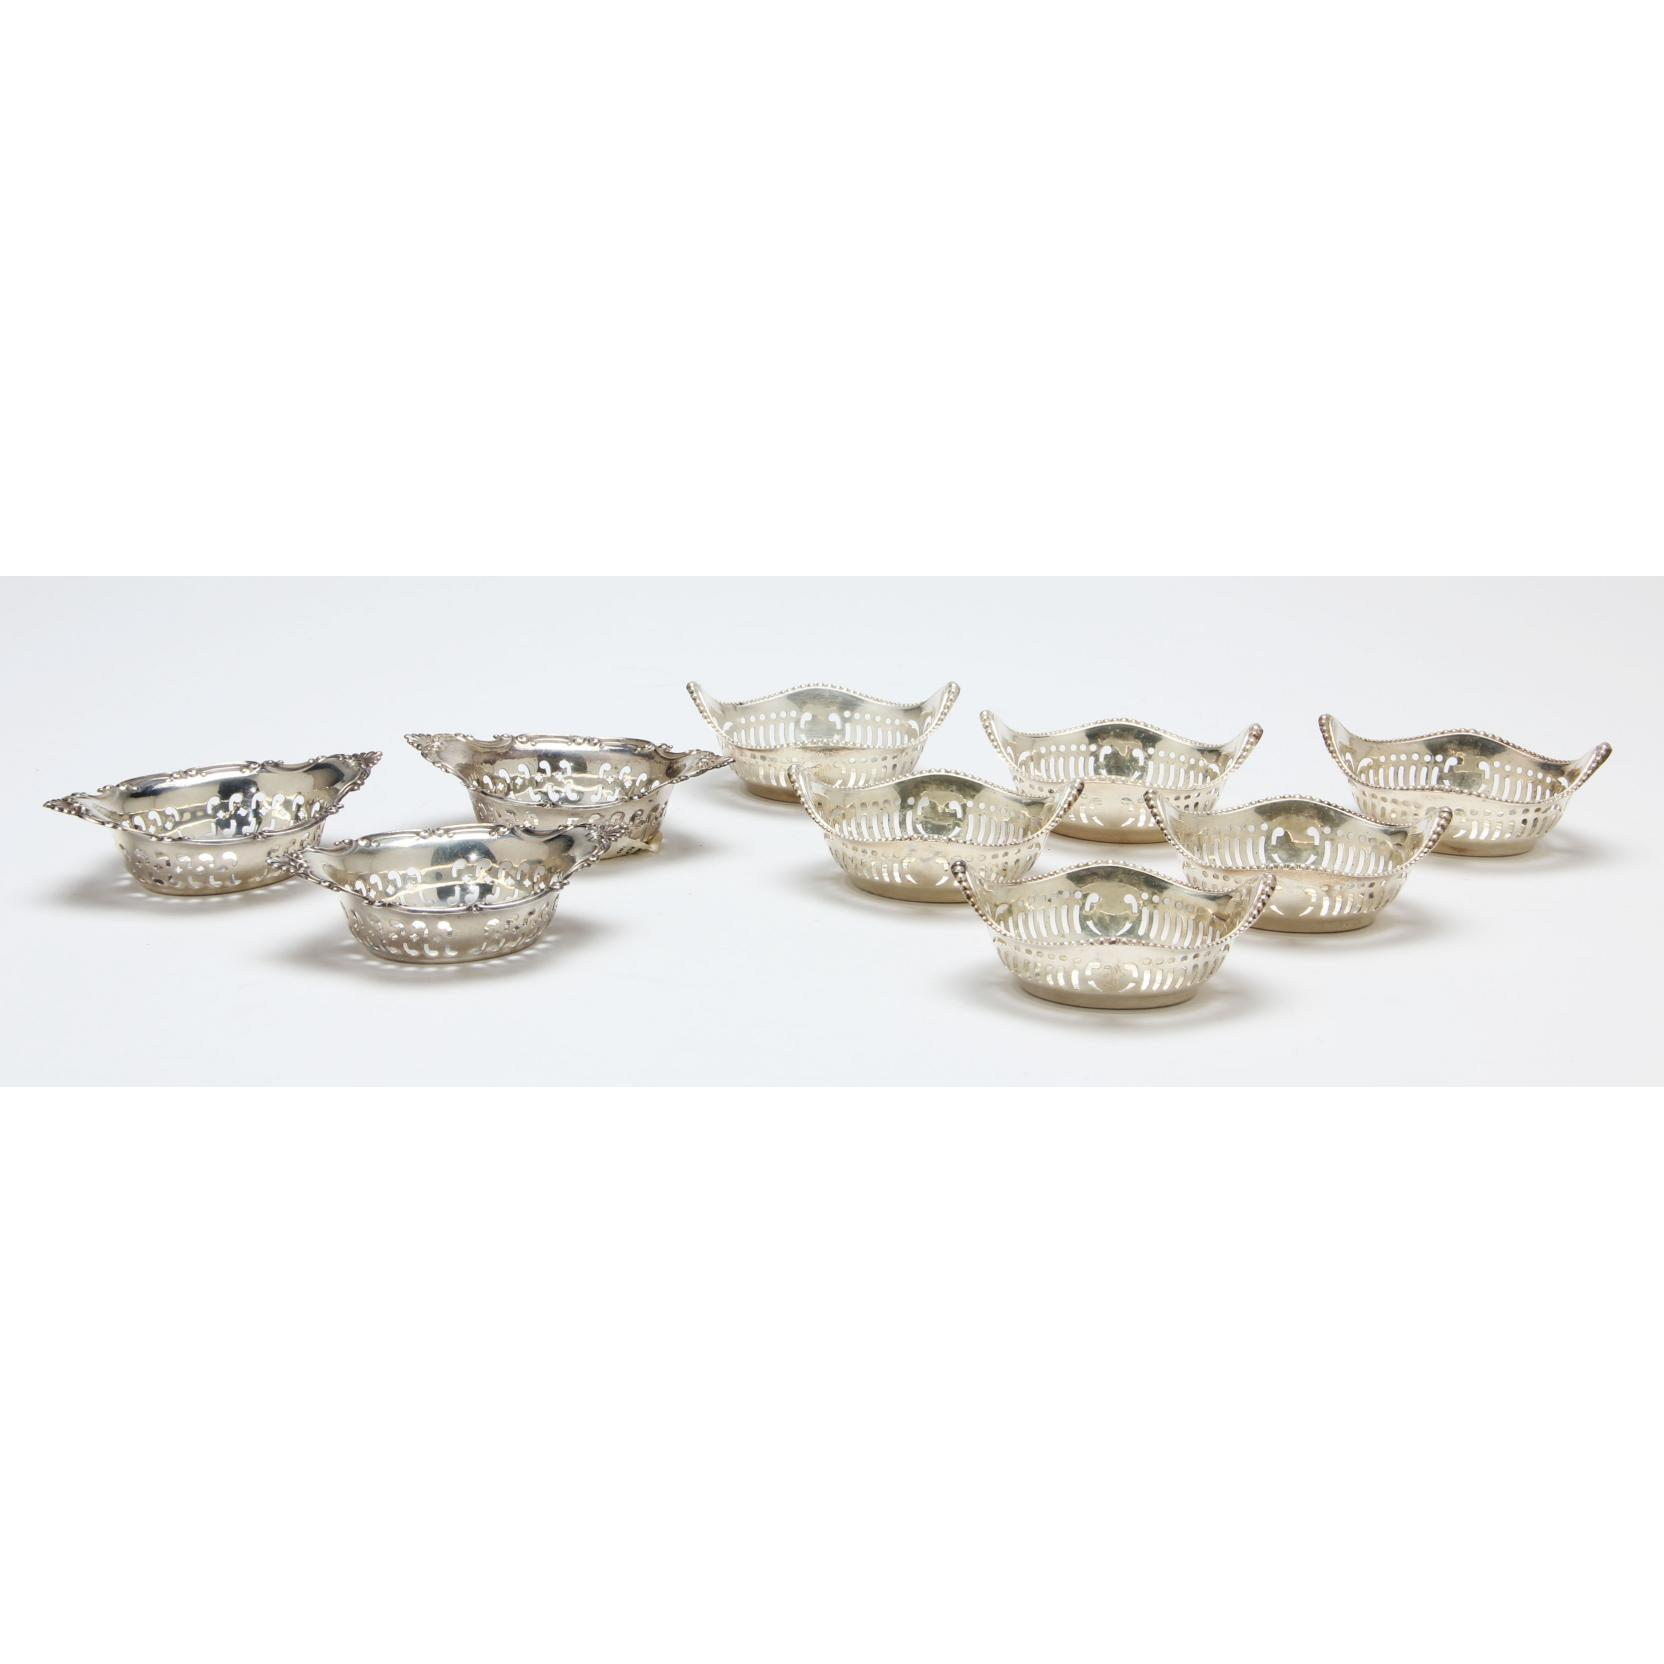 nine-sterling-silver-nut-dishes-by-gorham